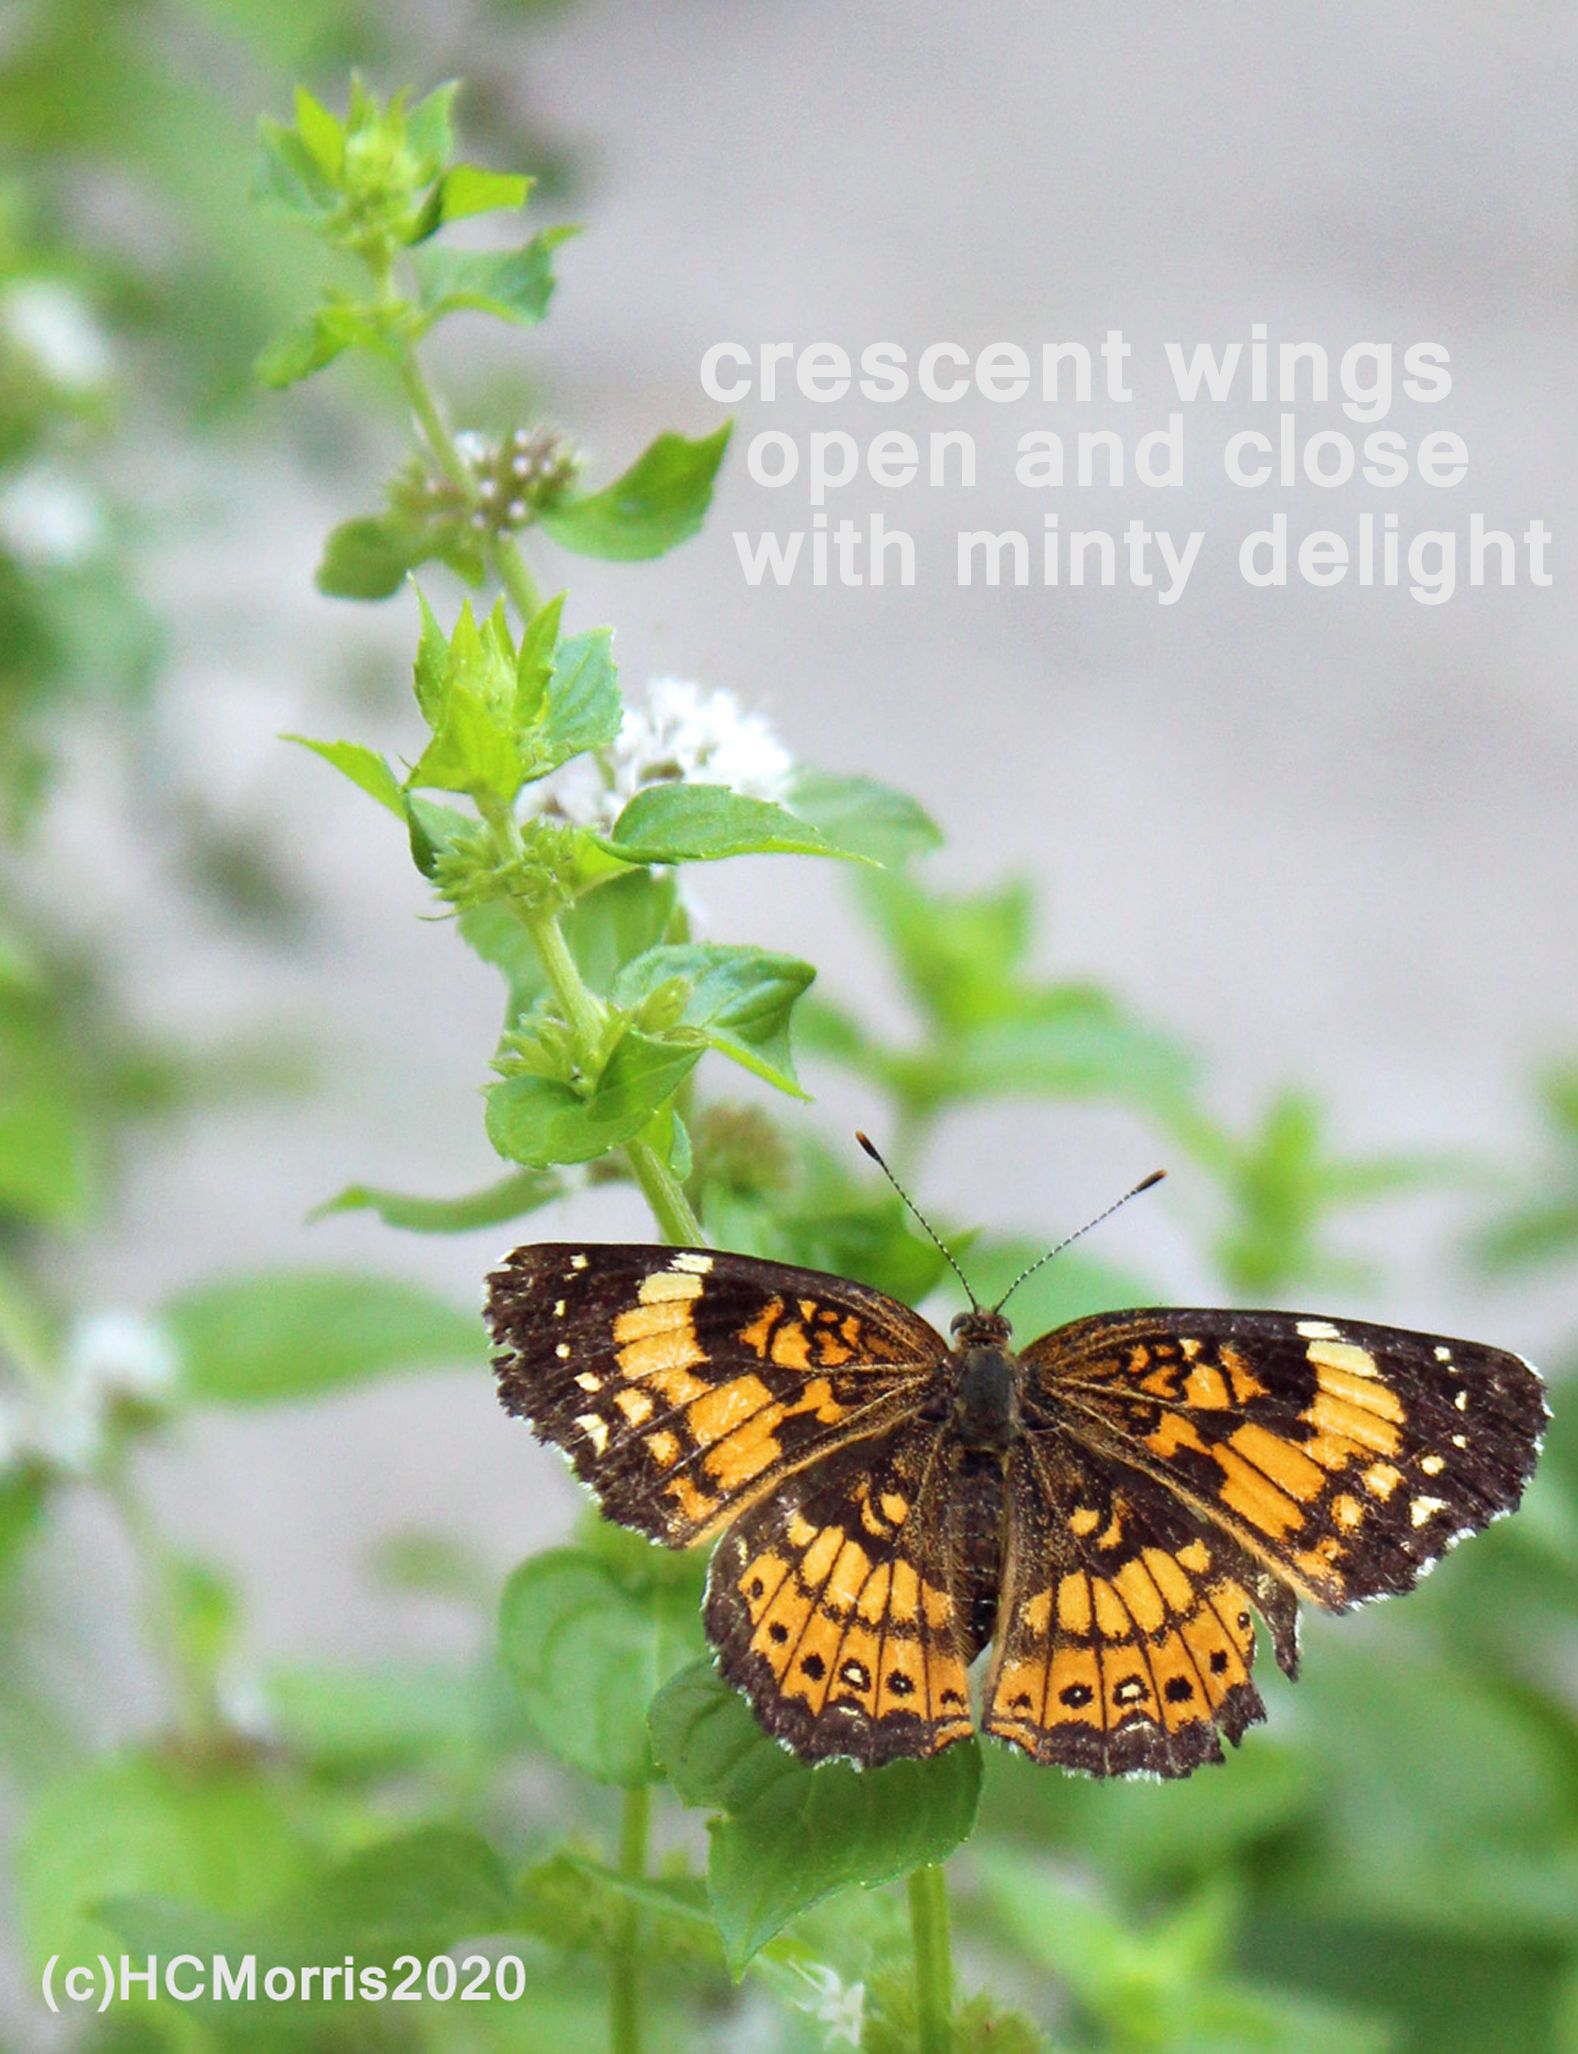 a crescent butterfly in the mint garden with words